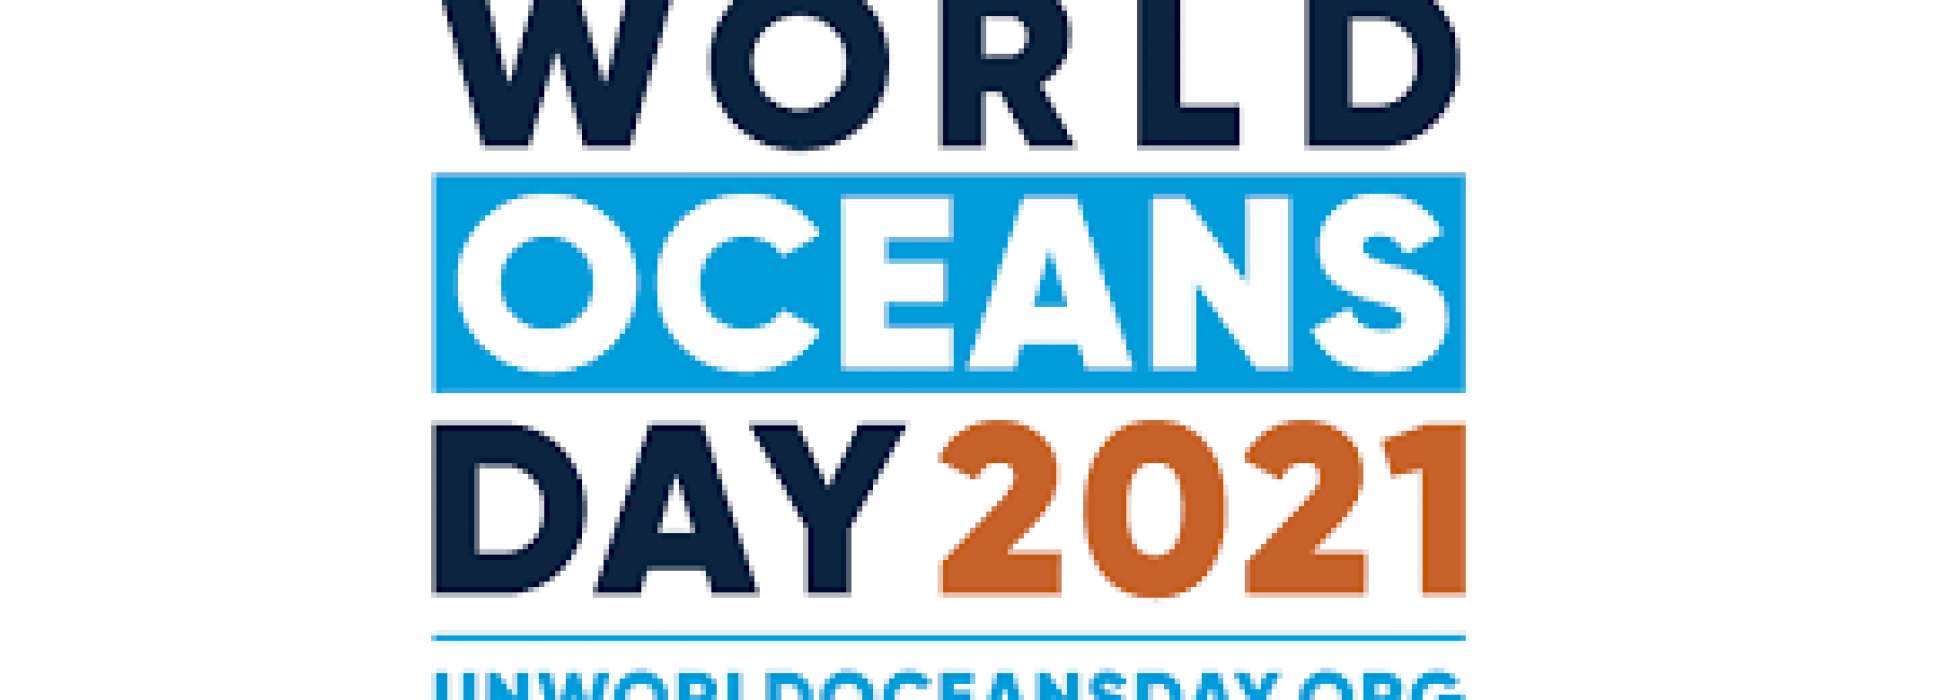 On Tuesday, June 8, 2021, Smart-appart celebrates World Ocean Day